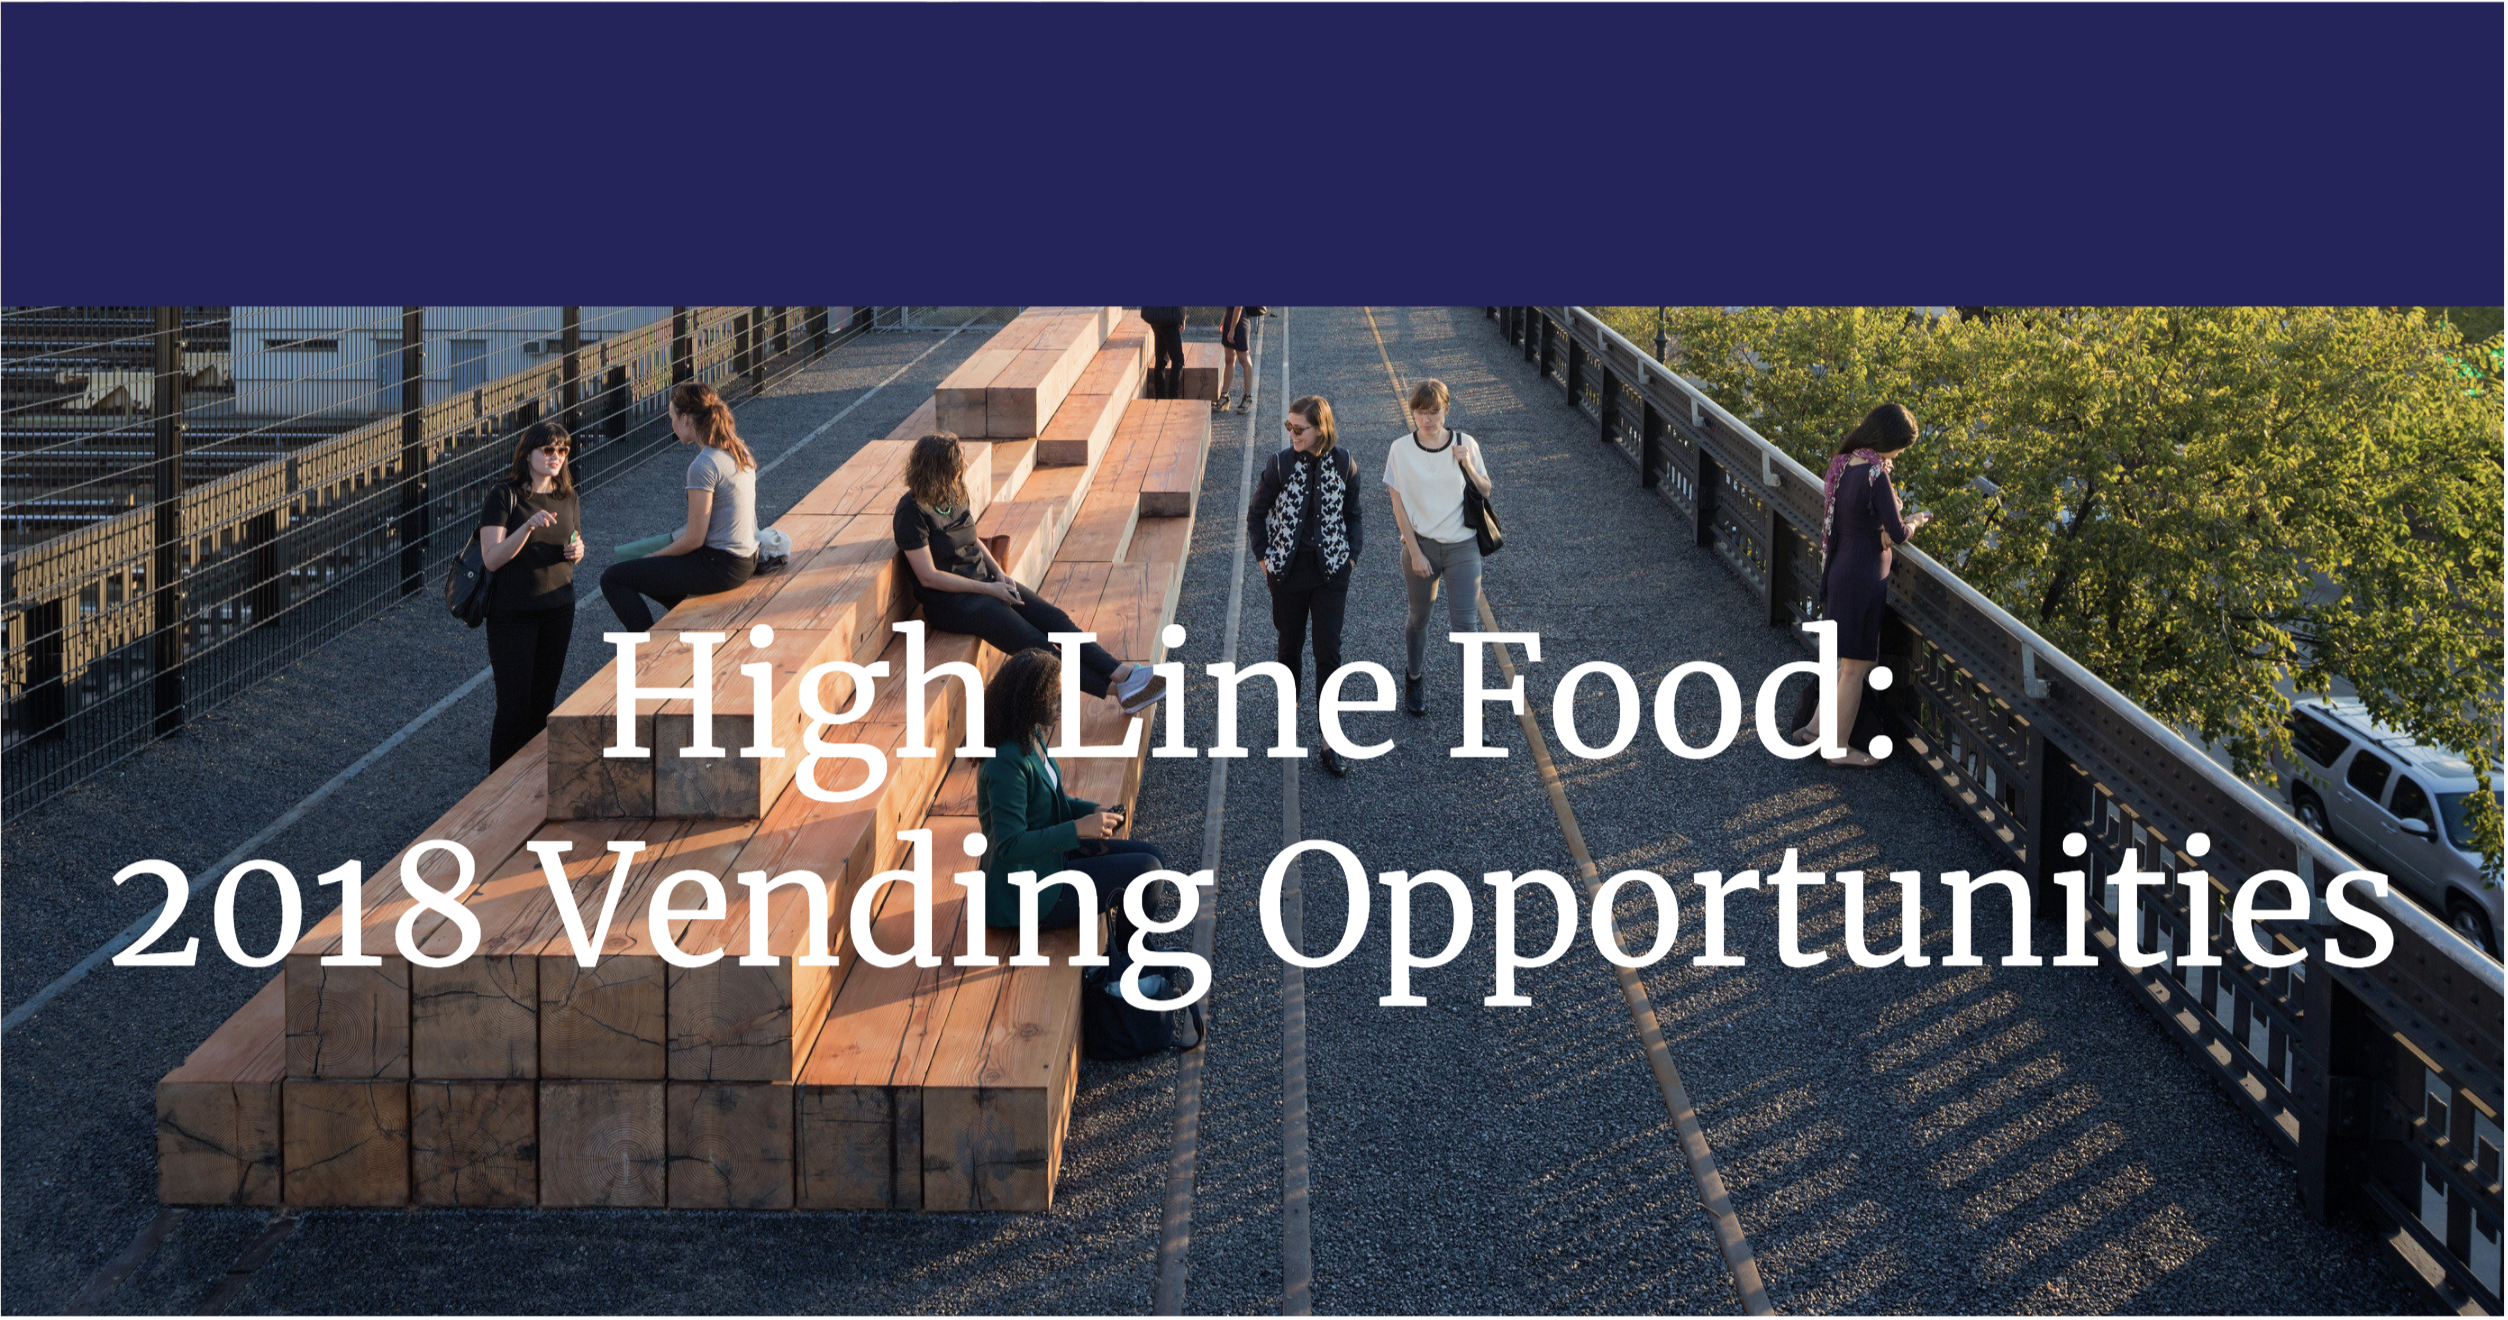 High Line Food: Vending Opportunities